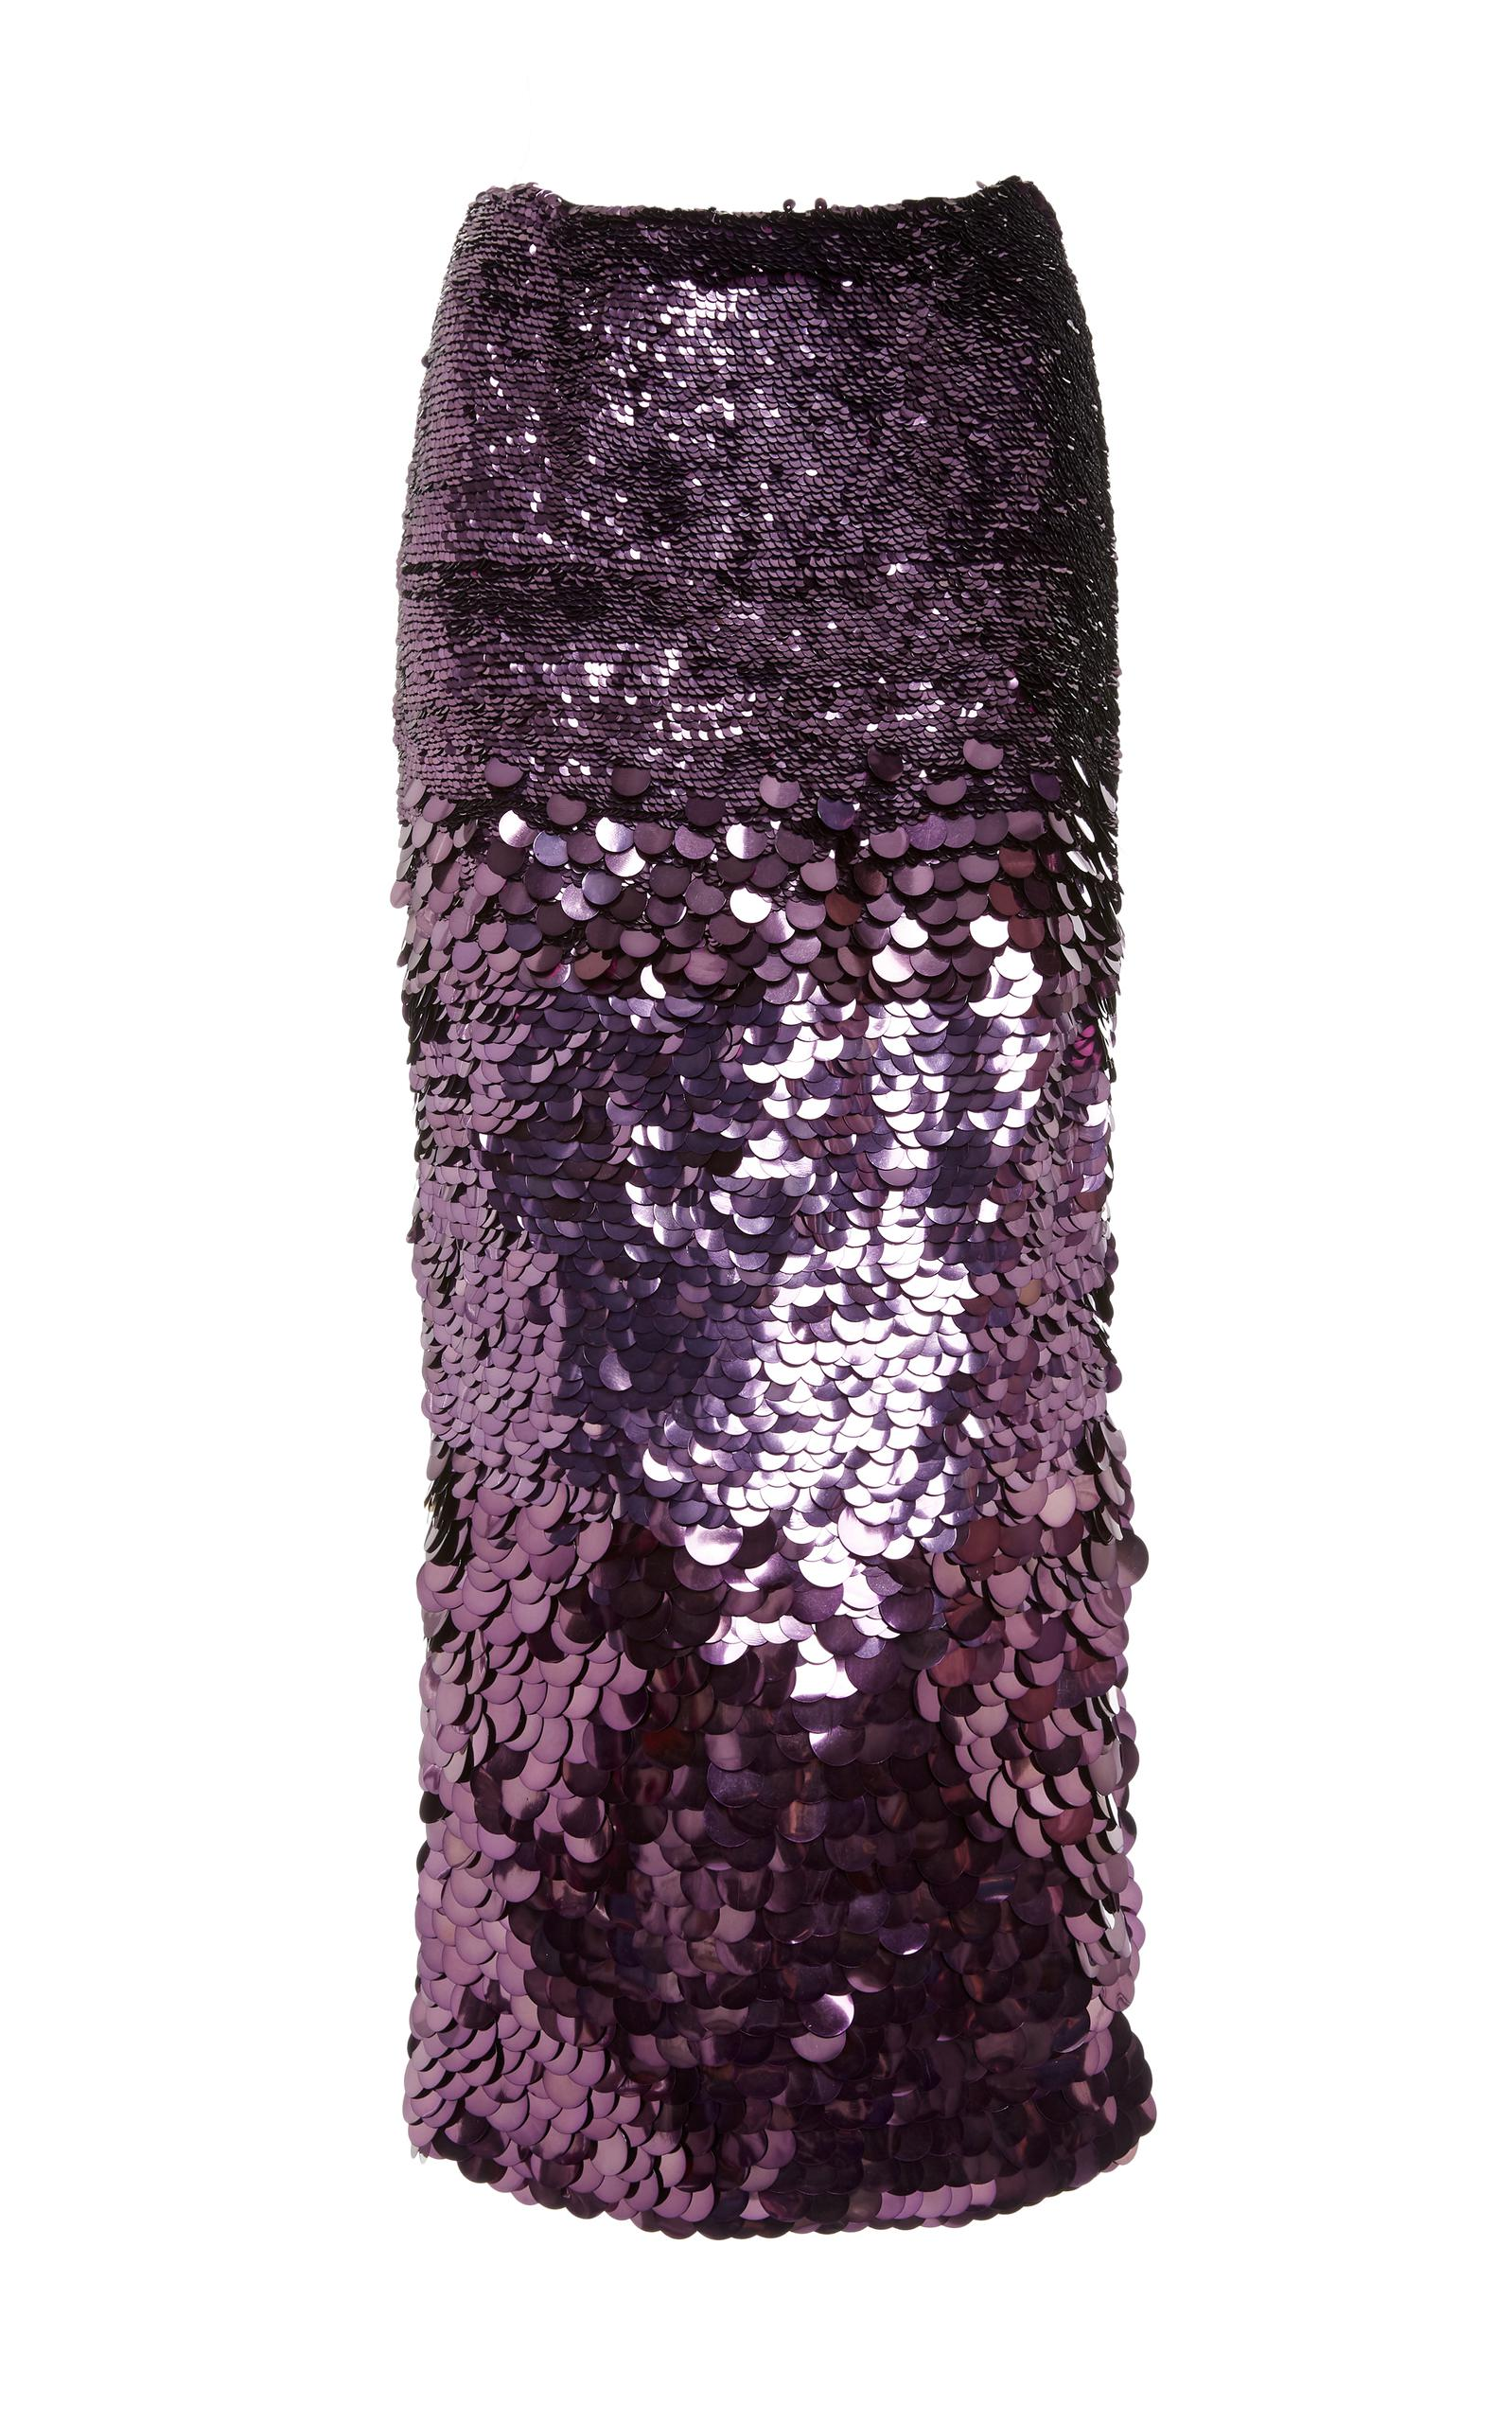 Sale Popular Degrade Sequin Pencil Skirt Sally Lapointe For Sale Wholesale Price Discount Prices Sale Sneakernews 1bq4x